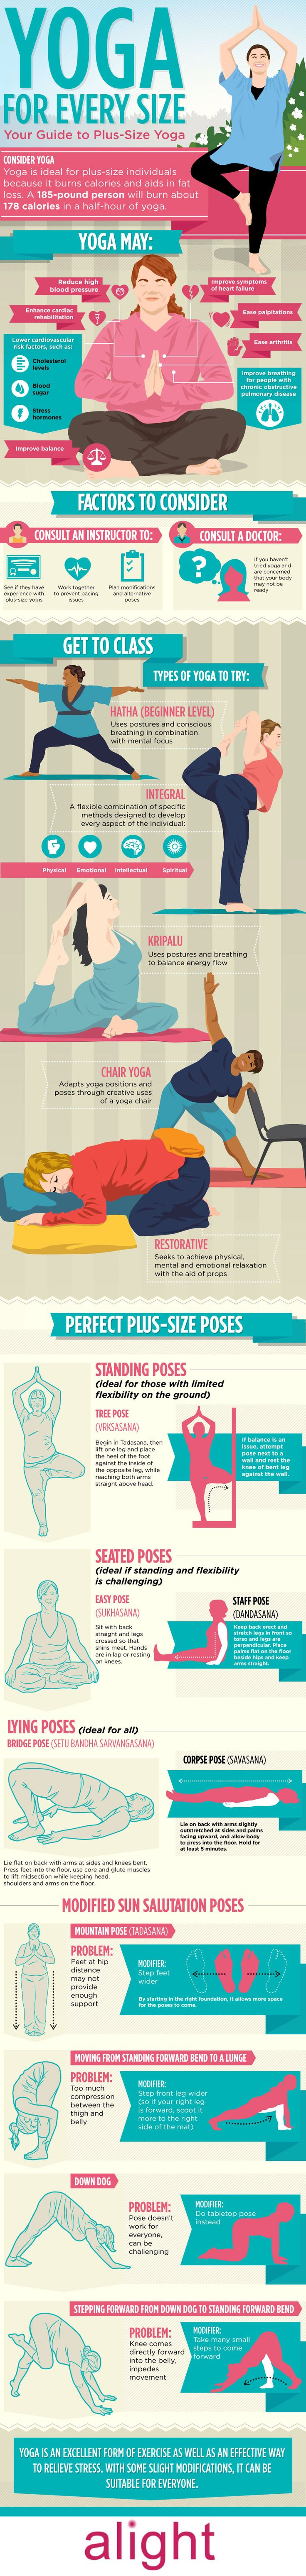 Yoga For Every Size: Your Guide To Plus-Size Yoga Infographic - http://www.alight.com/blog/guide-to-plus-size-yoga/